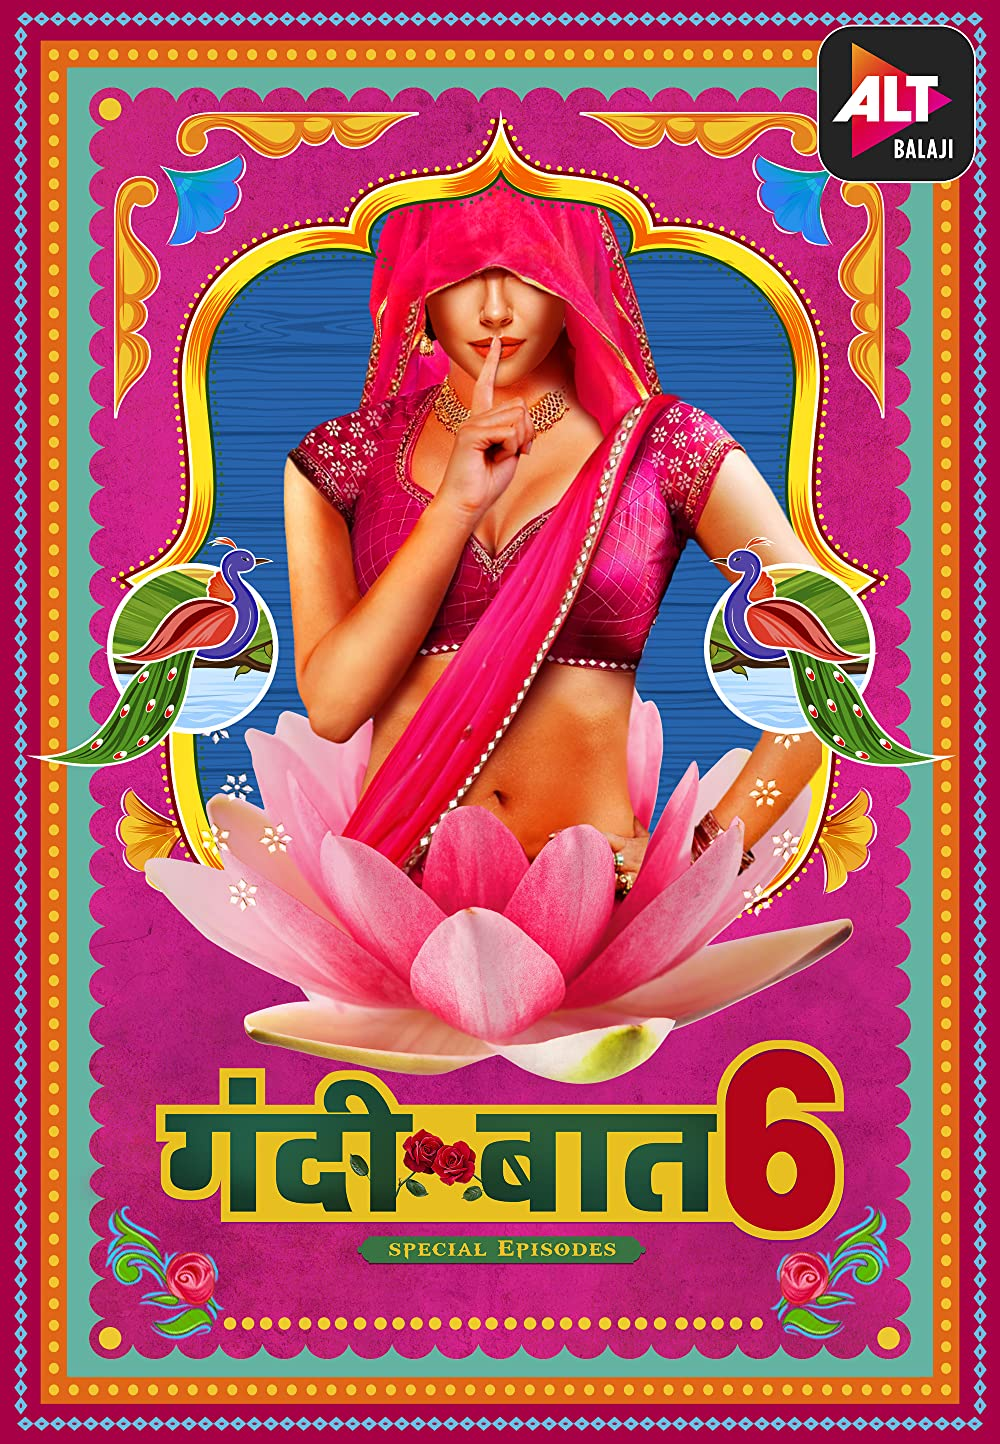 18+ Gandii Baat Season 6 2021 Ep (1-2) Hindi ALTBalaji Original Web Series 720p HDRip 500MB Download